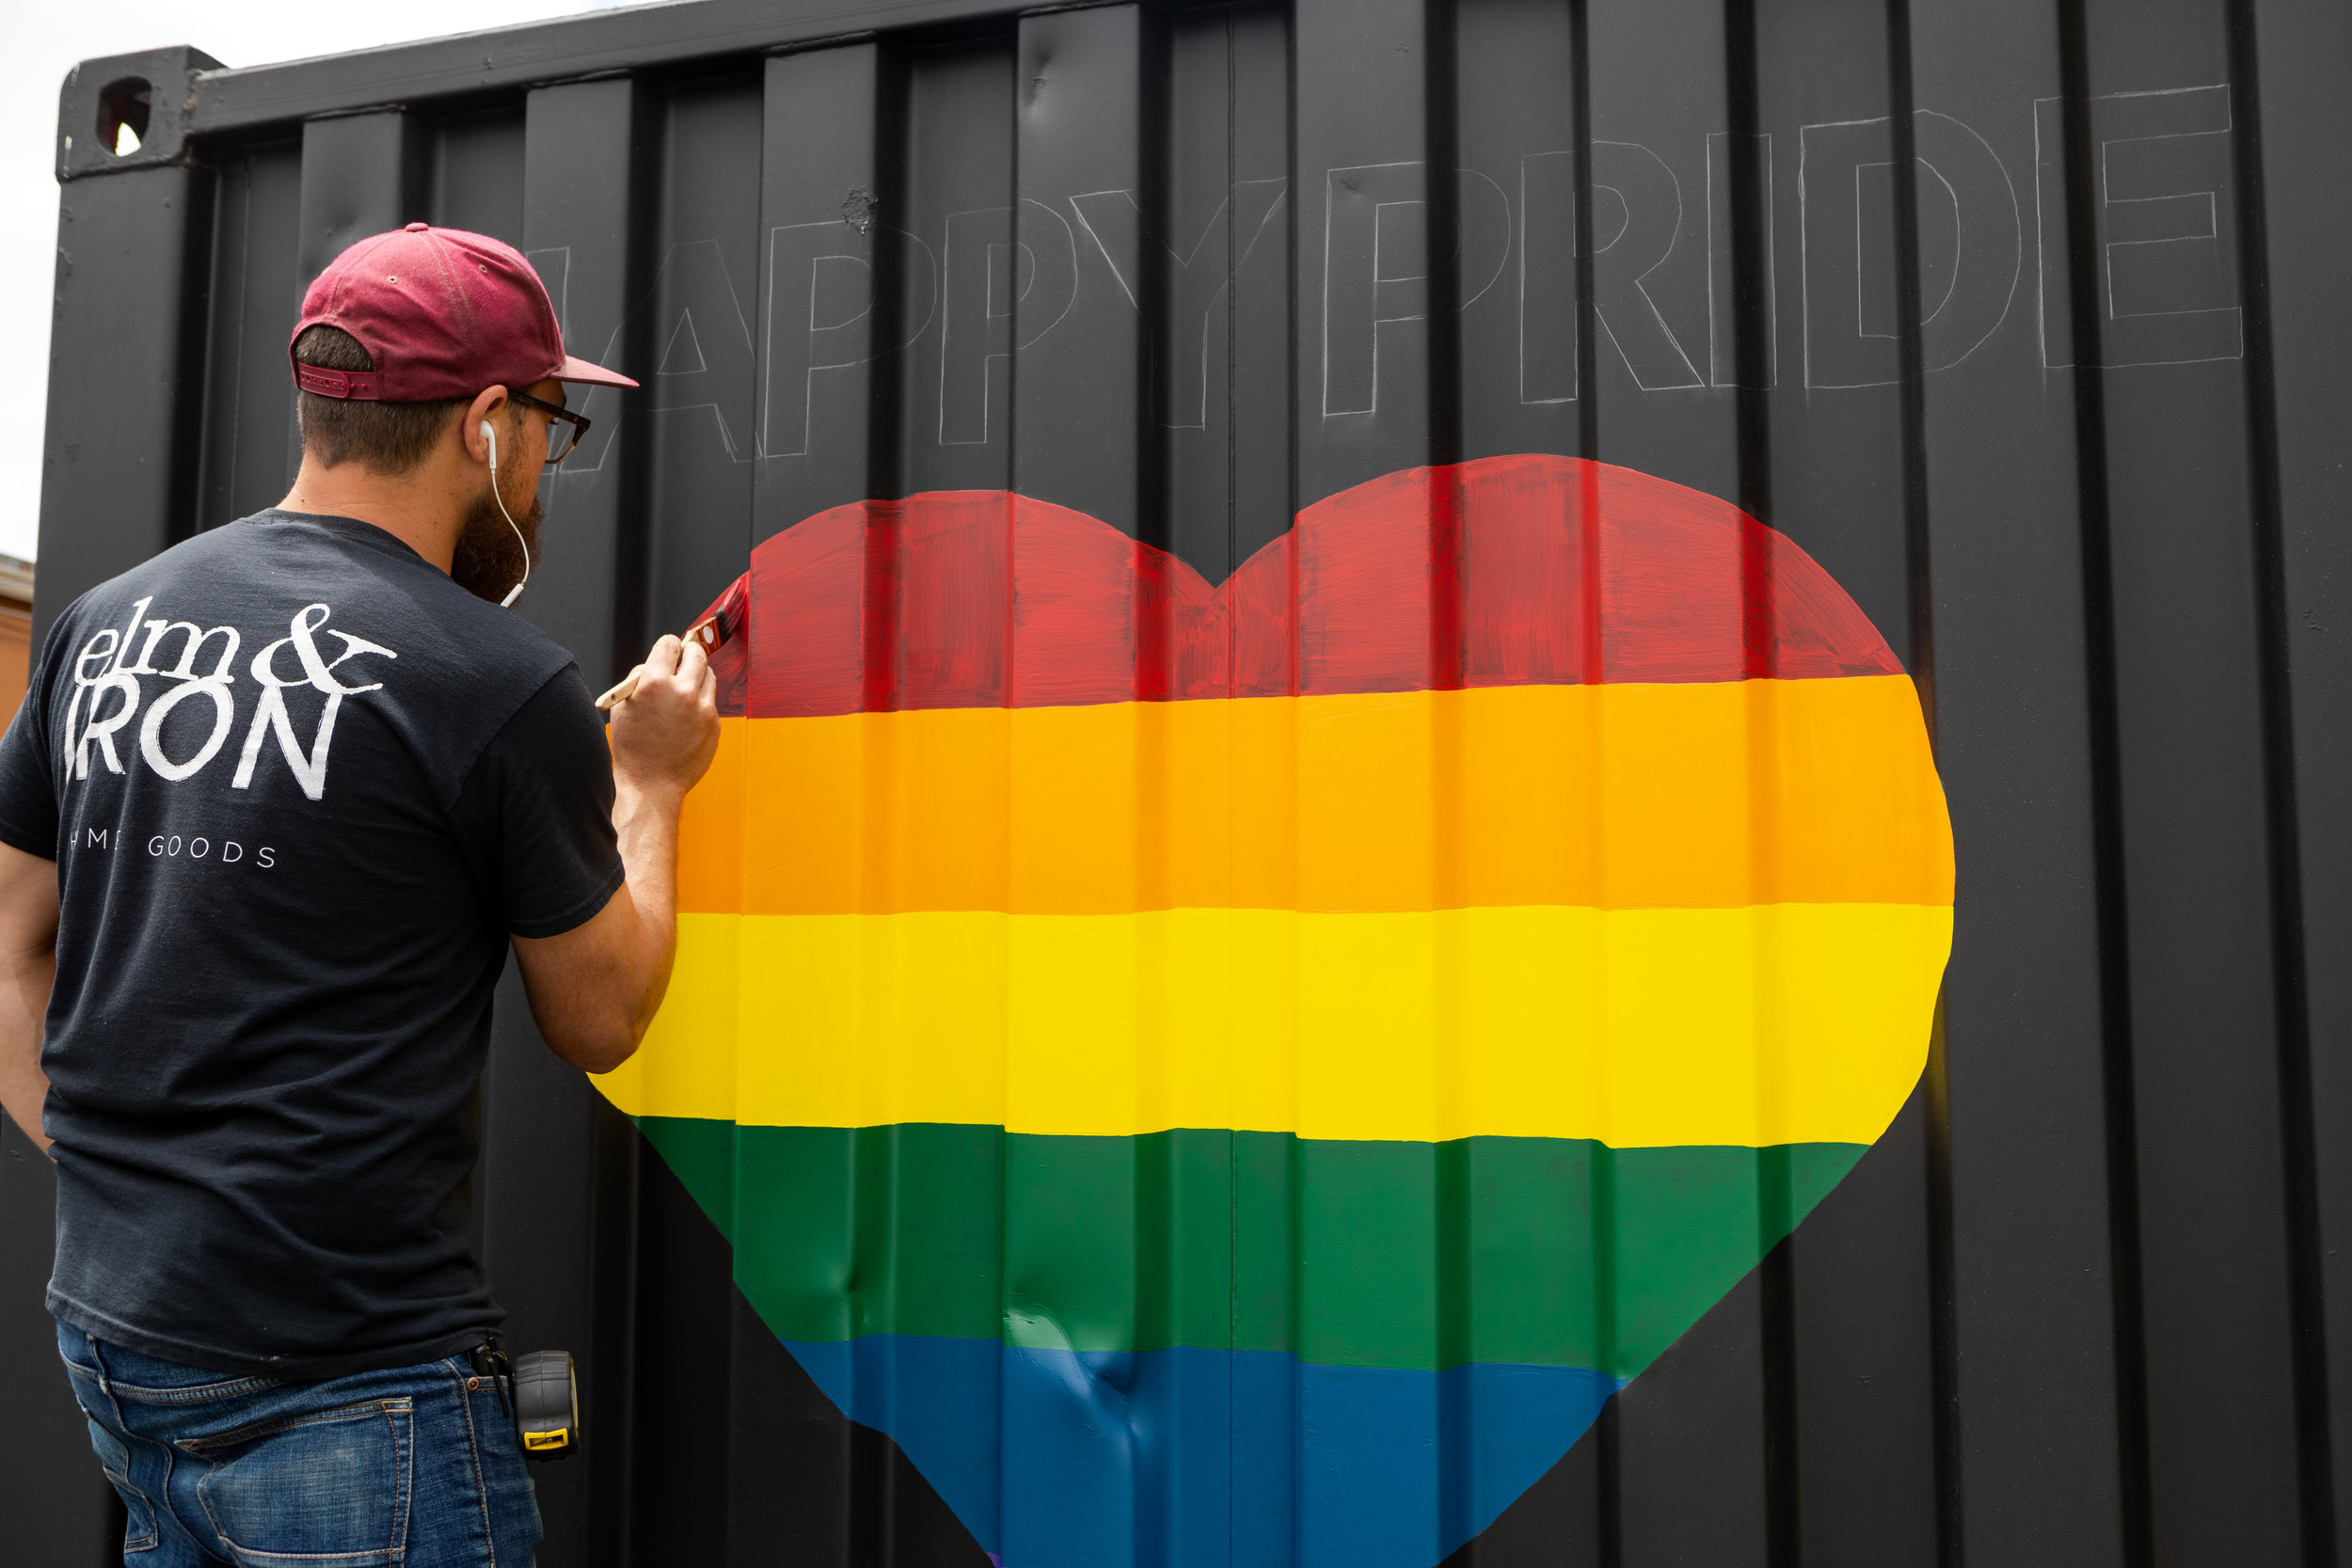 """Tony, painting """"Happy Pride"""" on one of our elm & IRON trailers."""